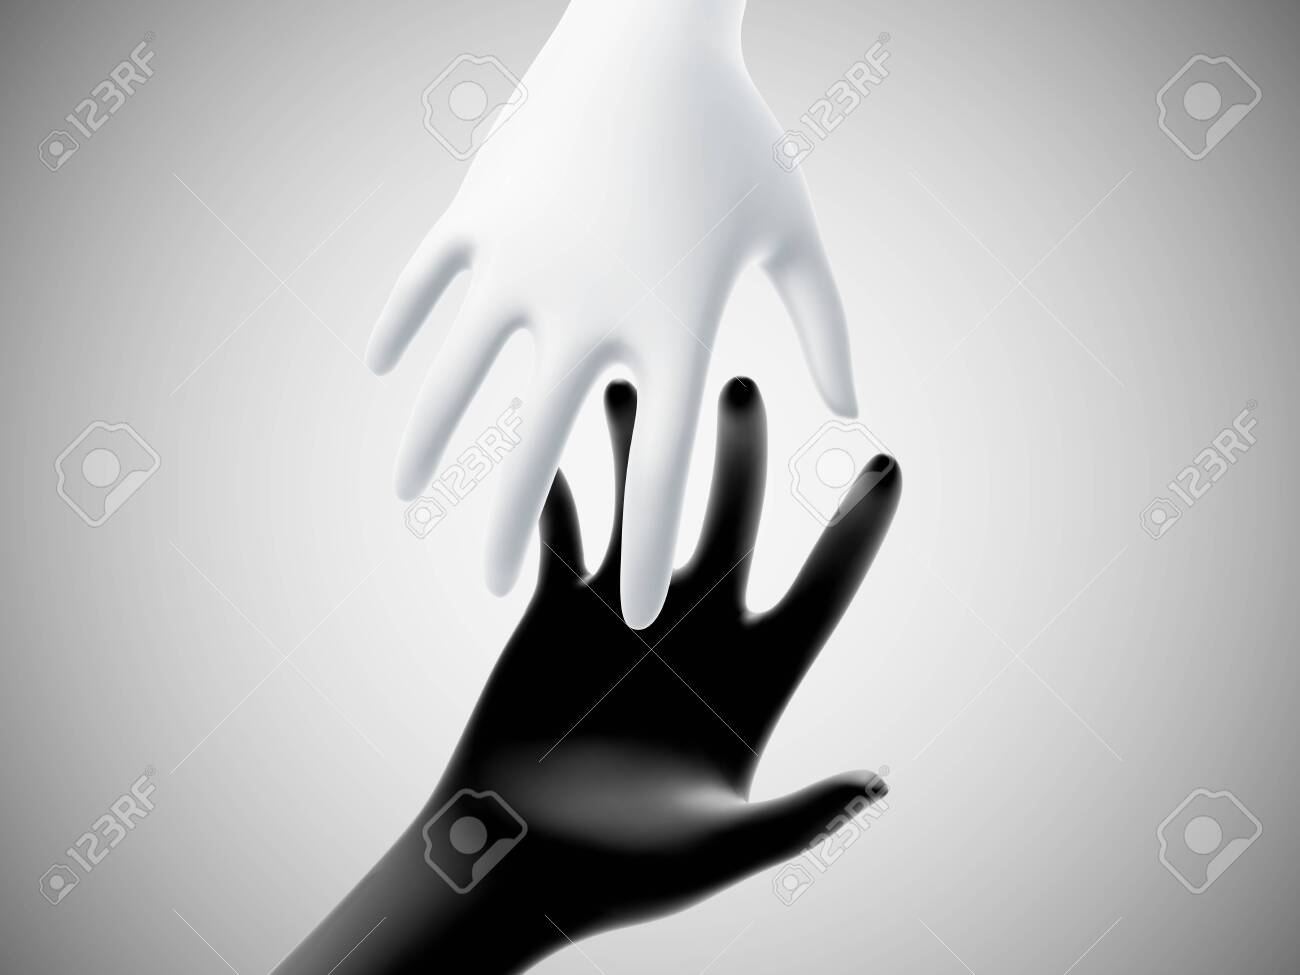 Two 3D hands taking each other on white background. Concept of help, charity, business assistance and partnership. White hand reaches for black hand. Vector illustration of helping gesture. - 144177971